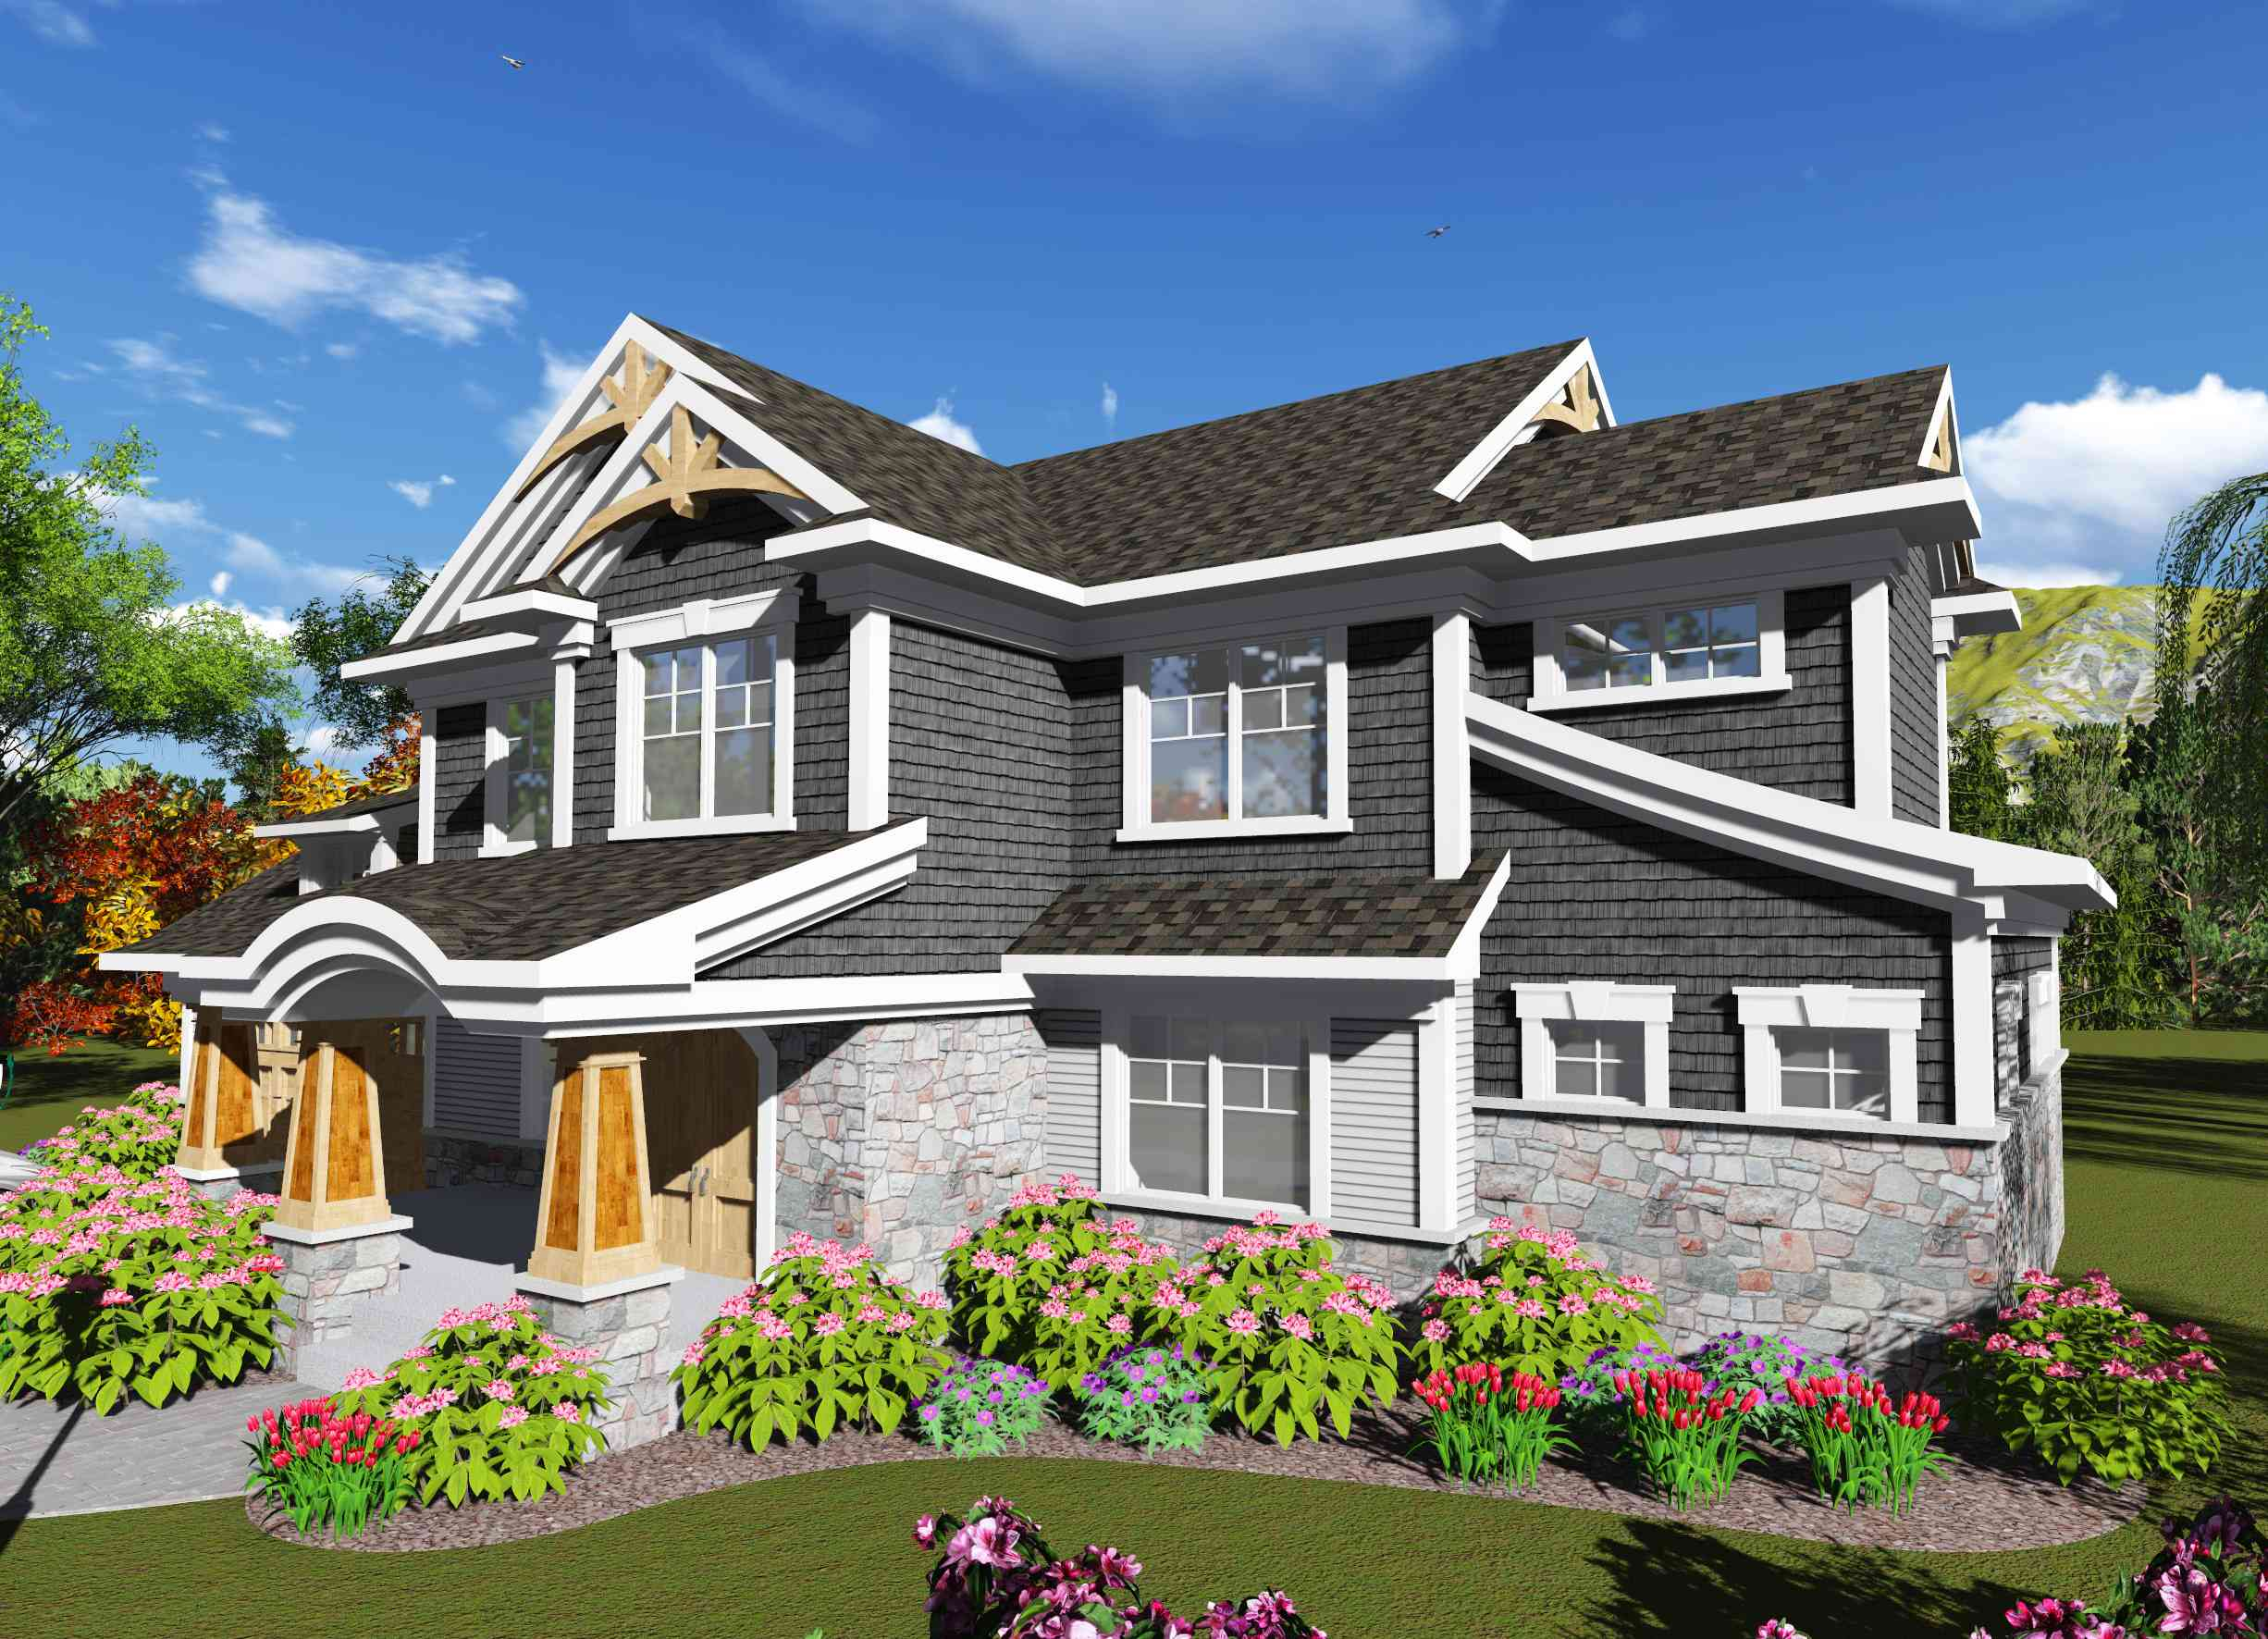 2 story craftsman with 4 bedrooms 89993ah for 2 story craftsman house plans